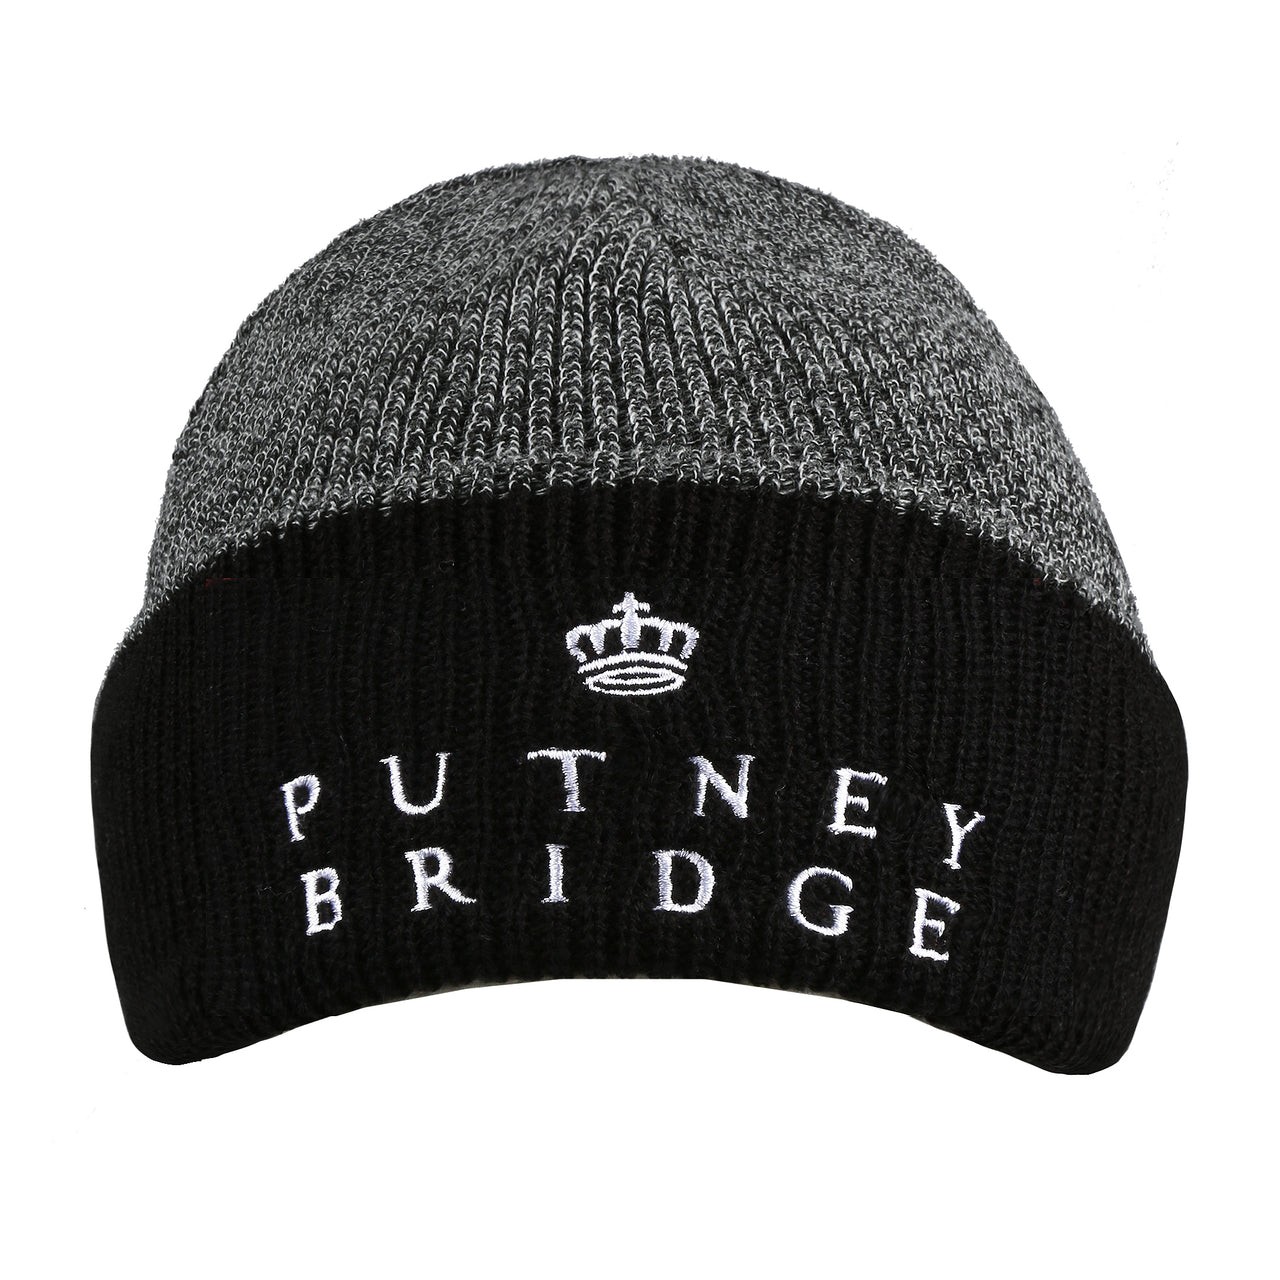 Hardfield Beanie - Antique Grey/ Black